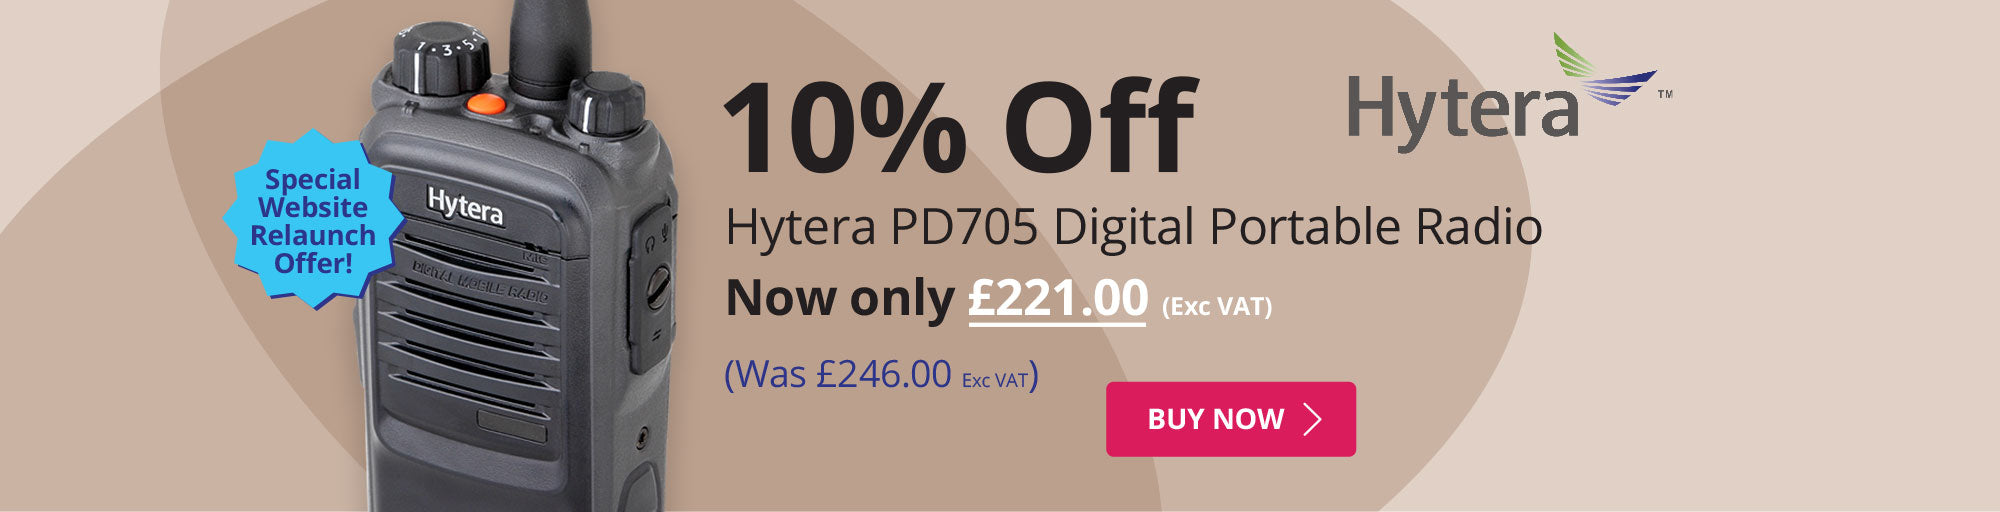 10% off Hytera PD705 Digital Portable Radio